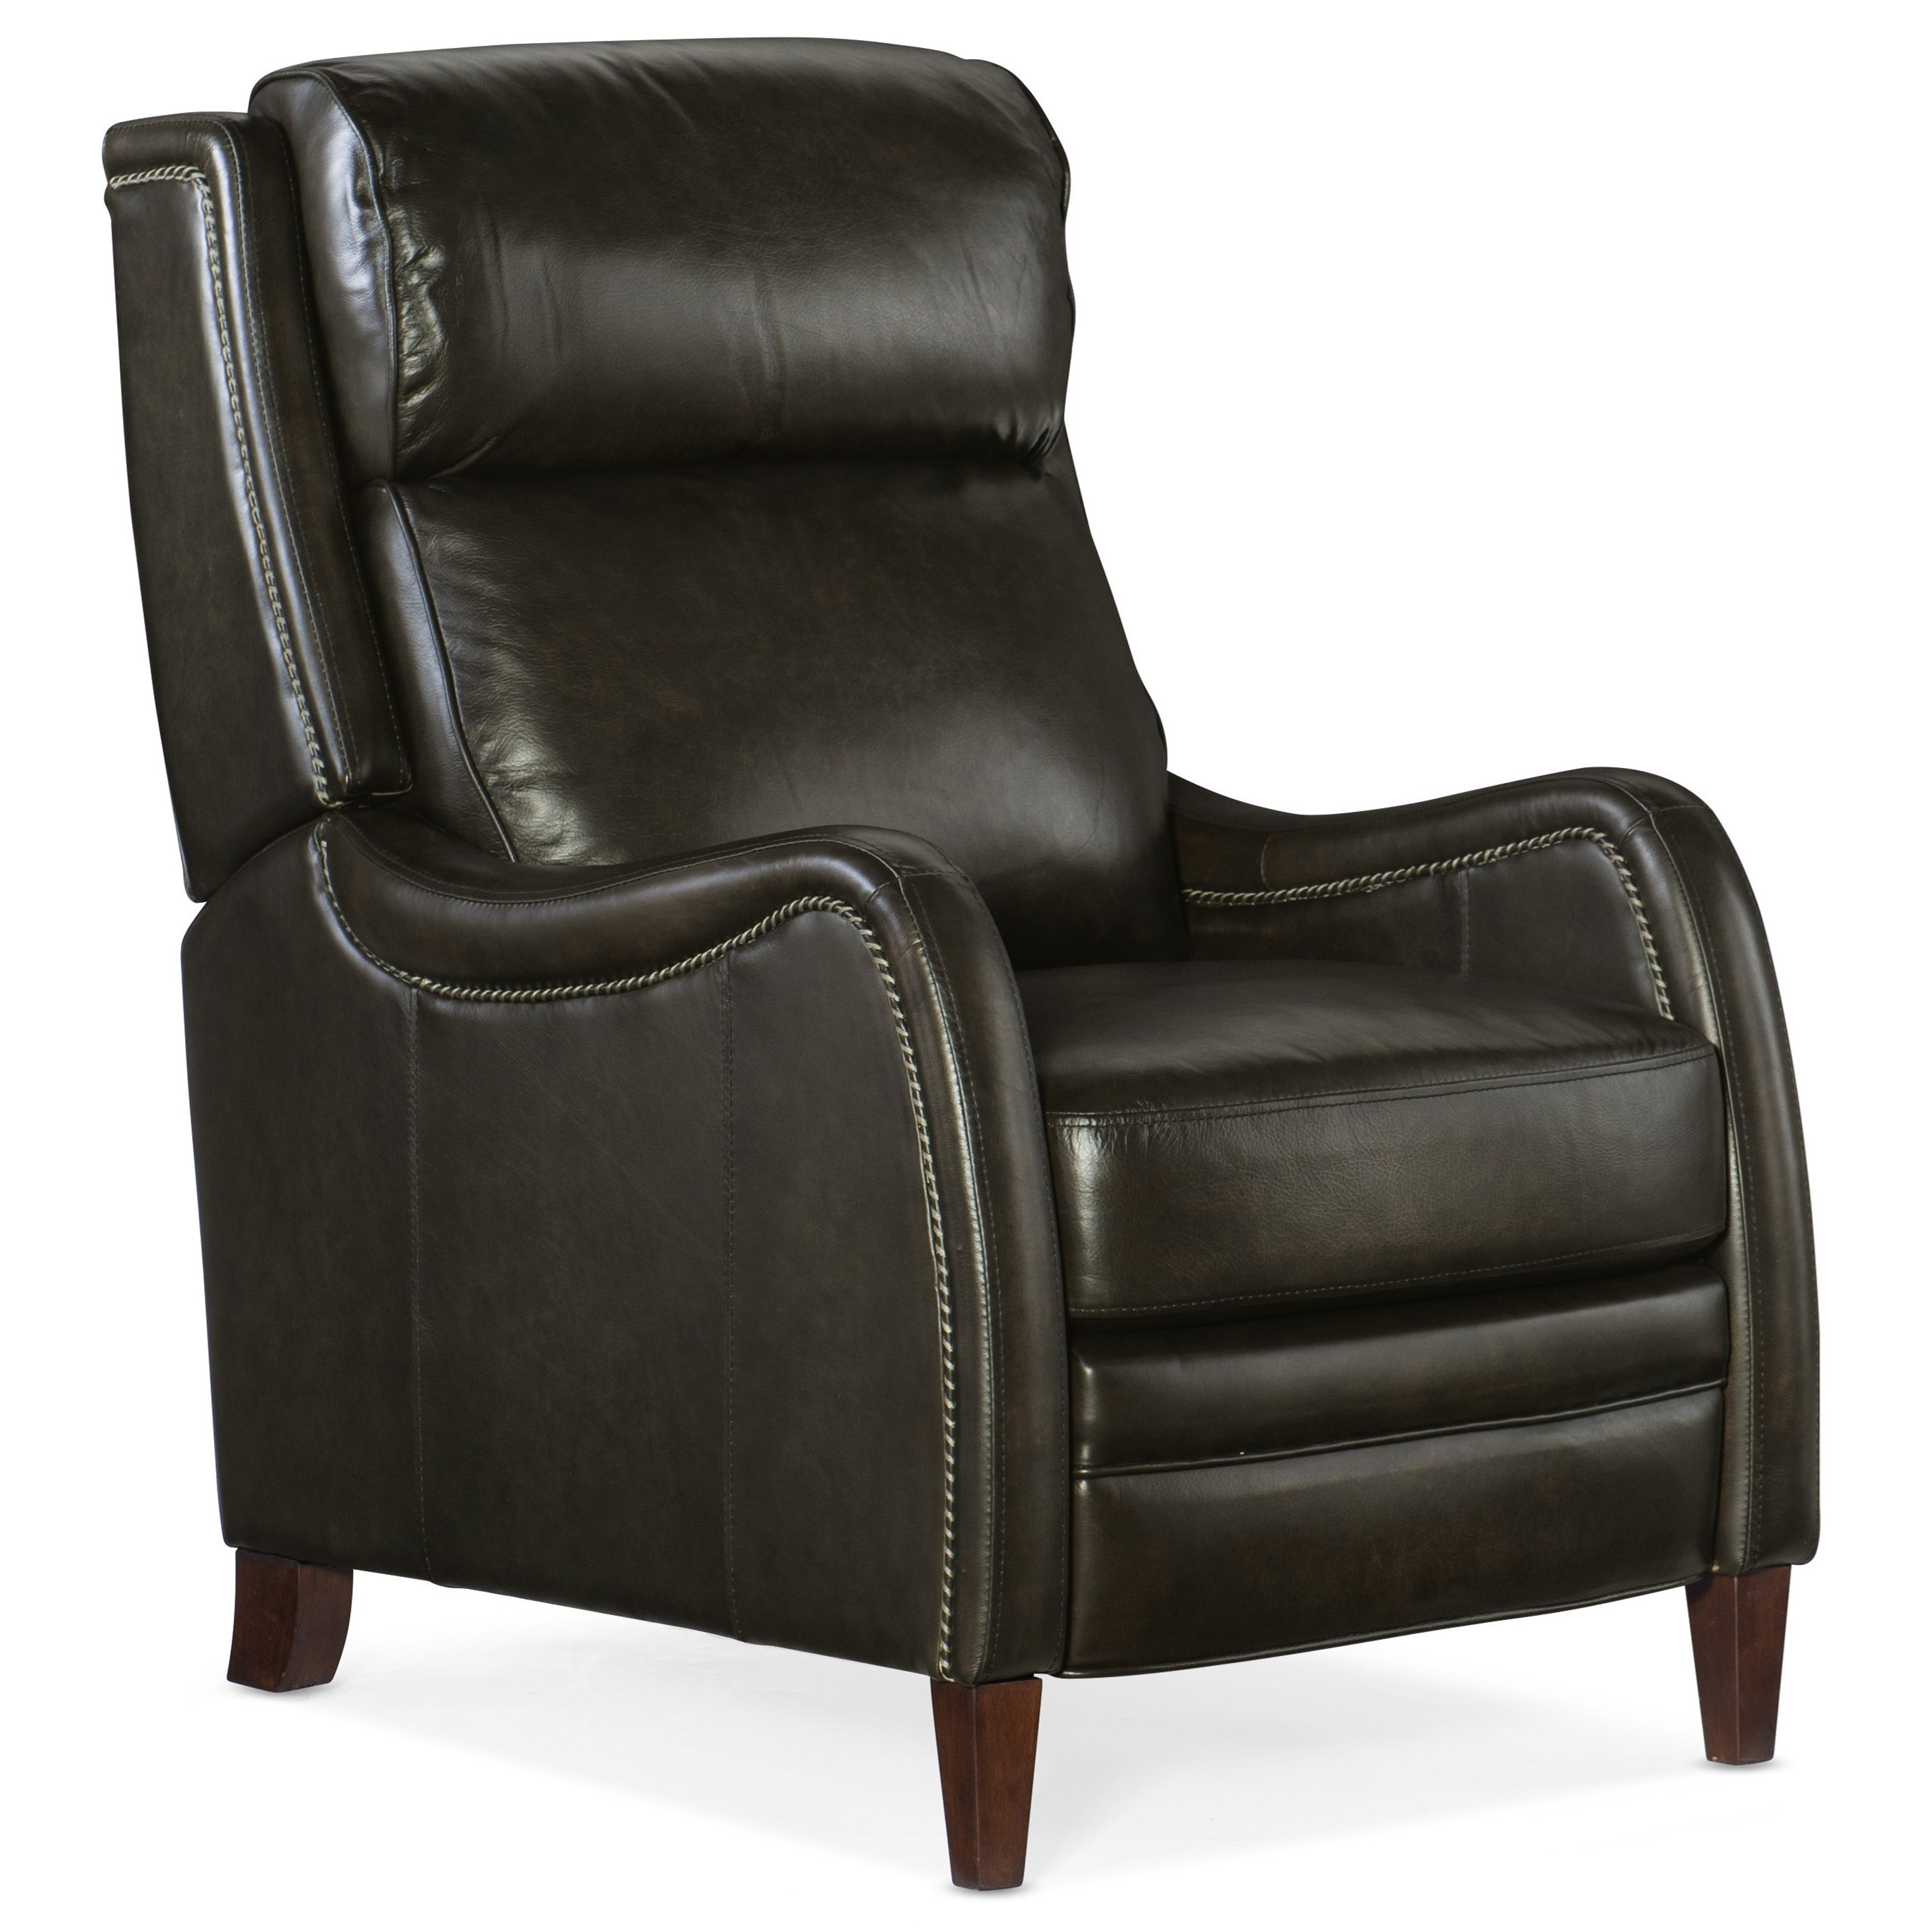 Stark Manual Push Back Recliner by Hooker Furniture at Lagniappe Home Store